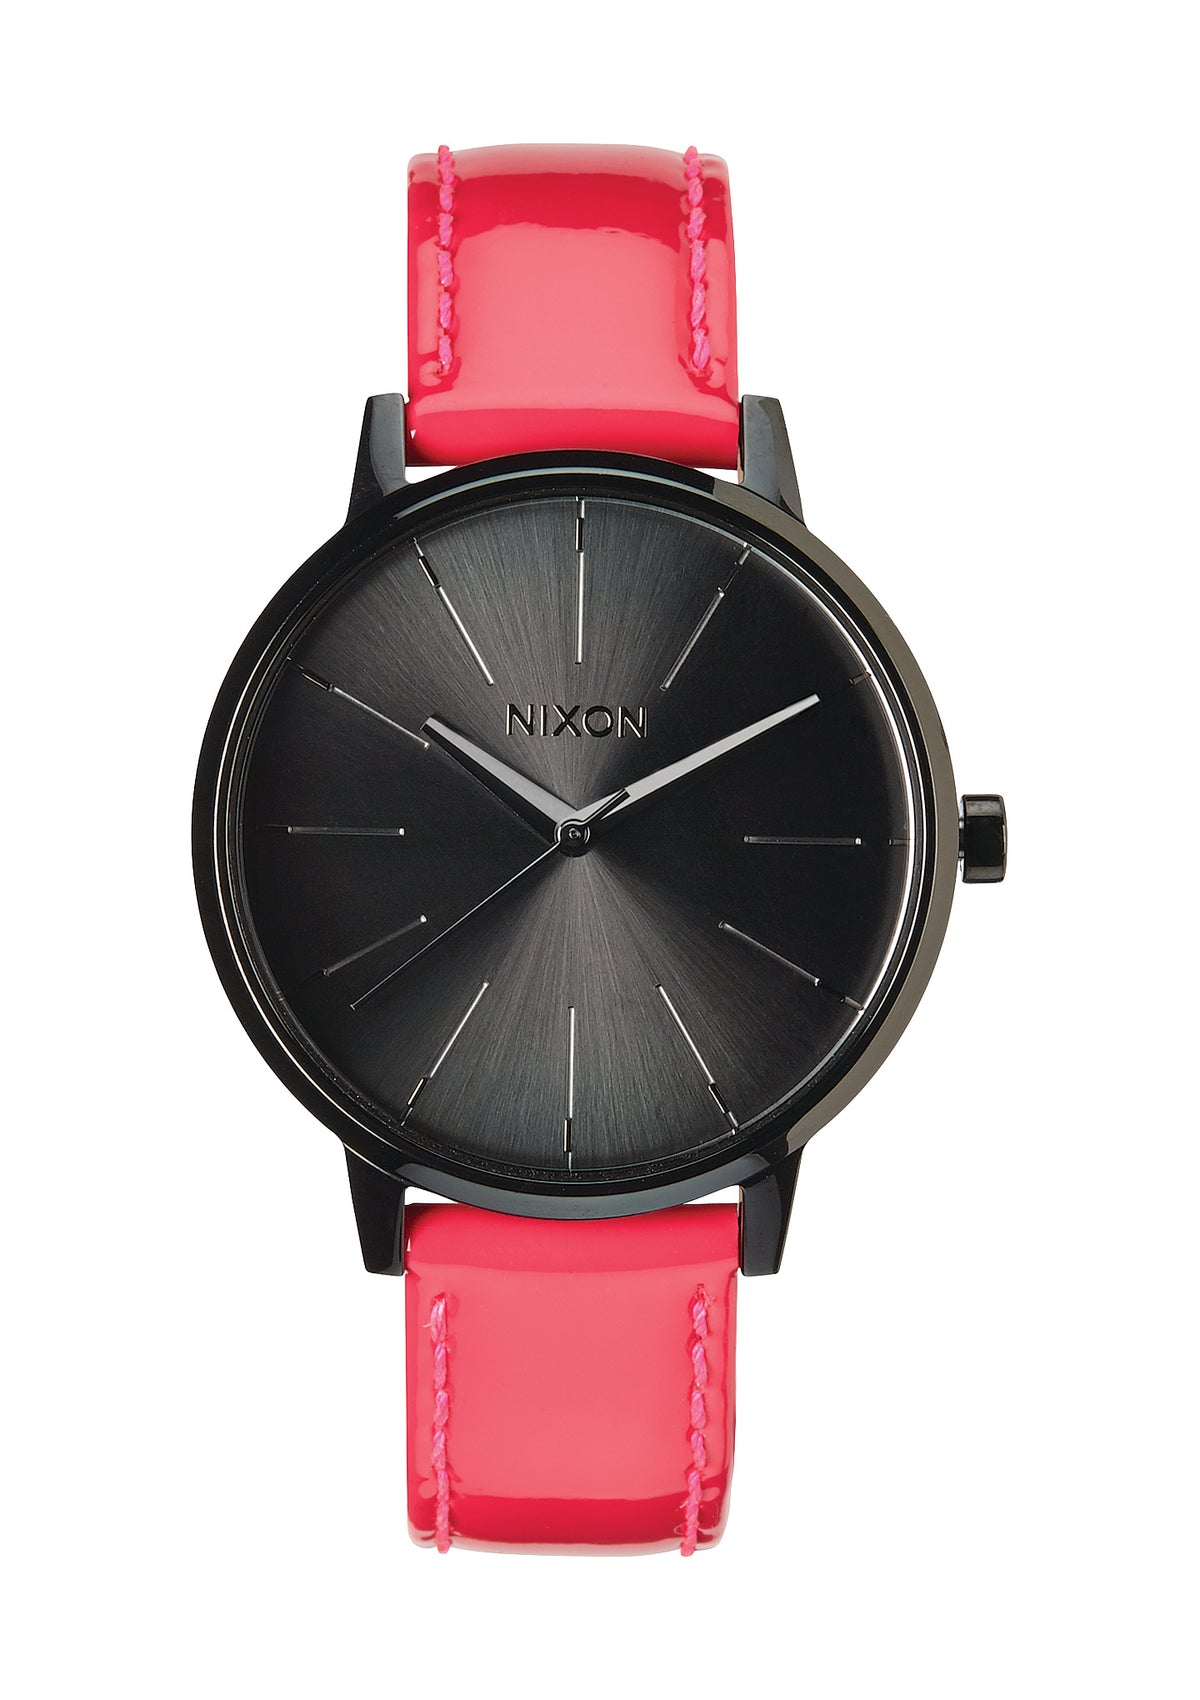 Nixon Watch Kensington Leather - Bright Pink Patent